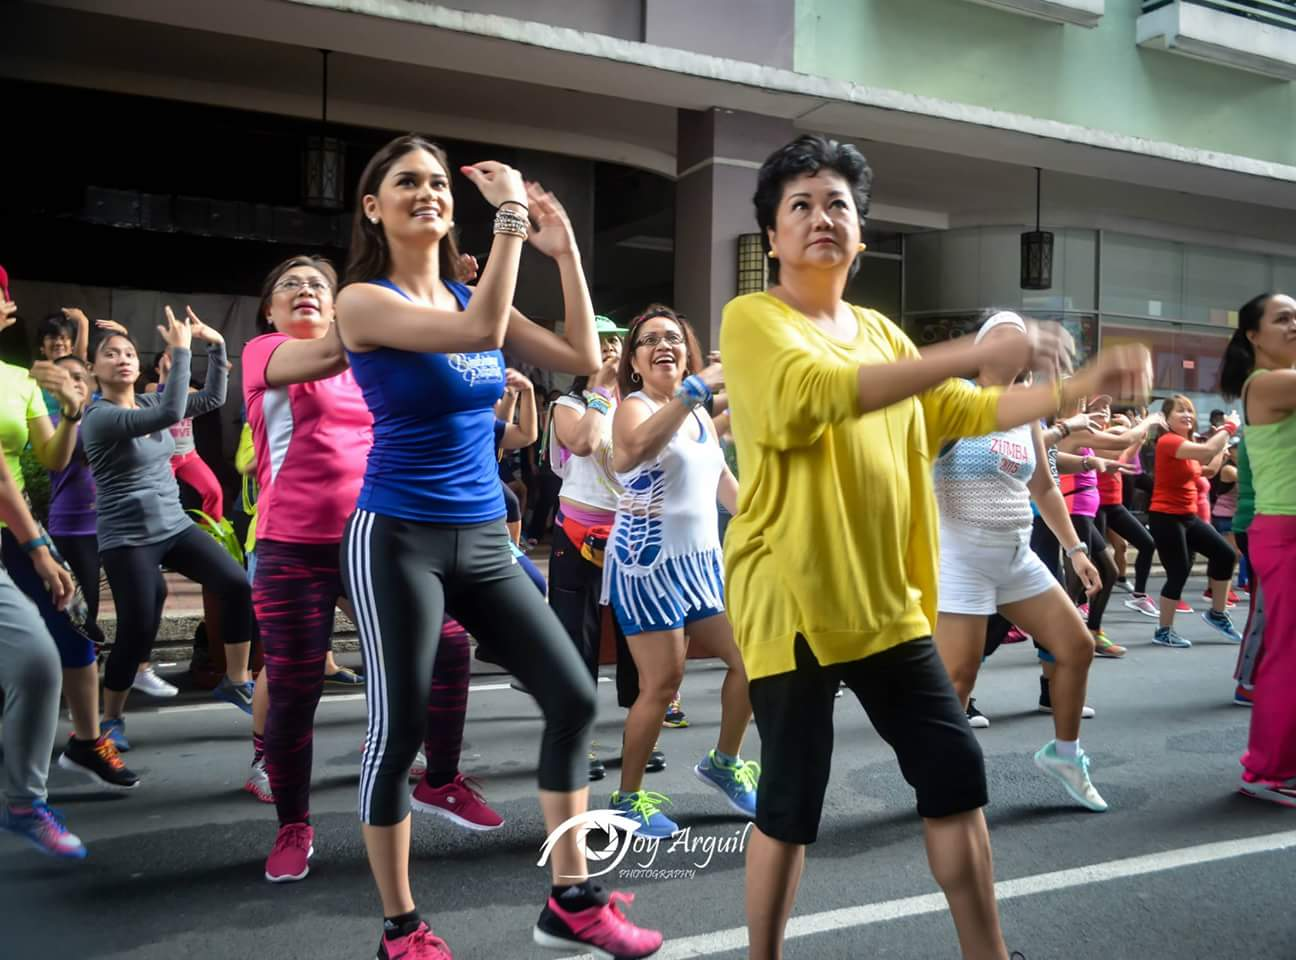 A Motheru2019s Day Zumba Class with the Bb. Pilipinas 2015 Queens | normannorman.com